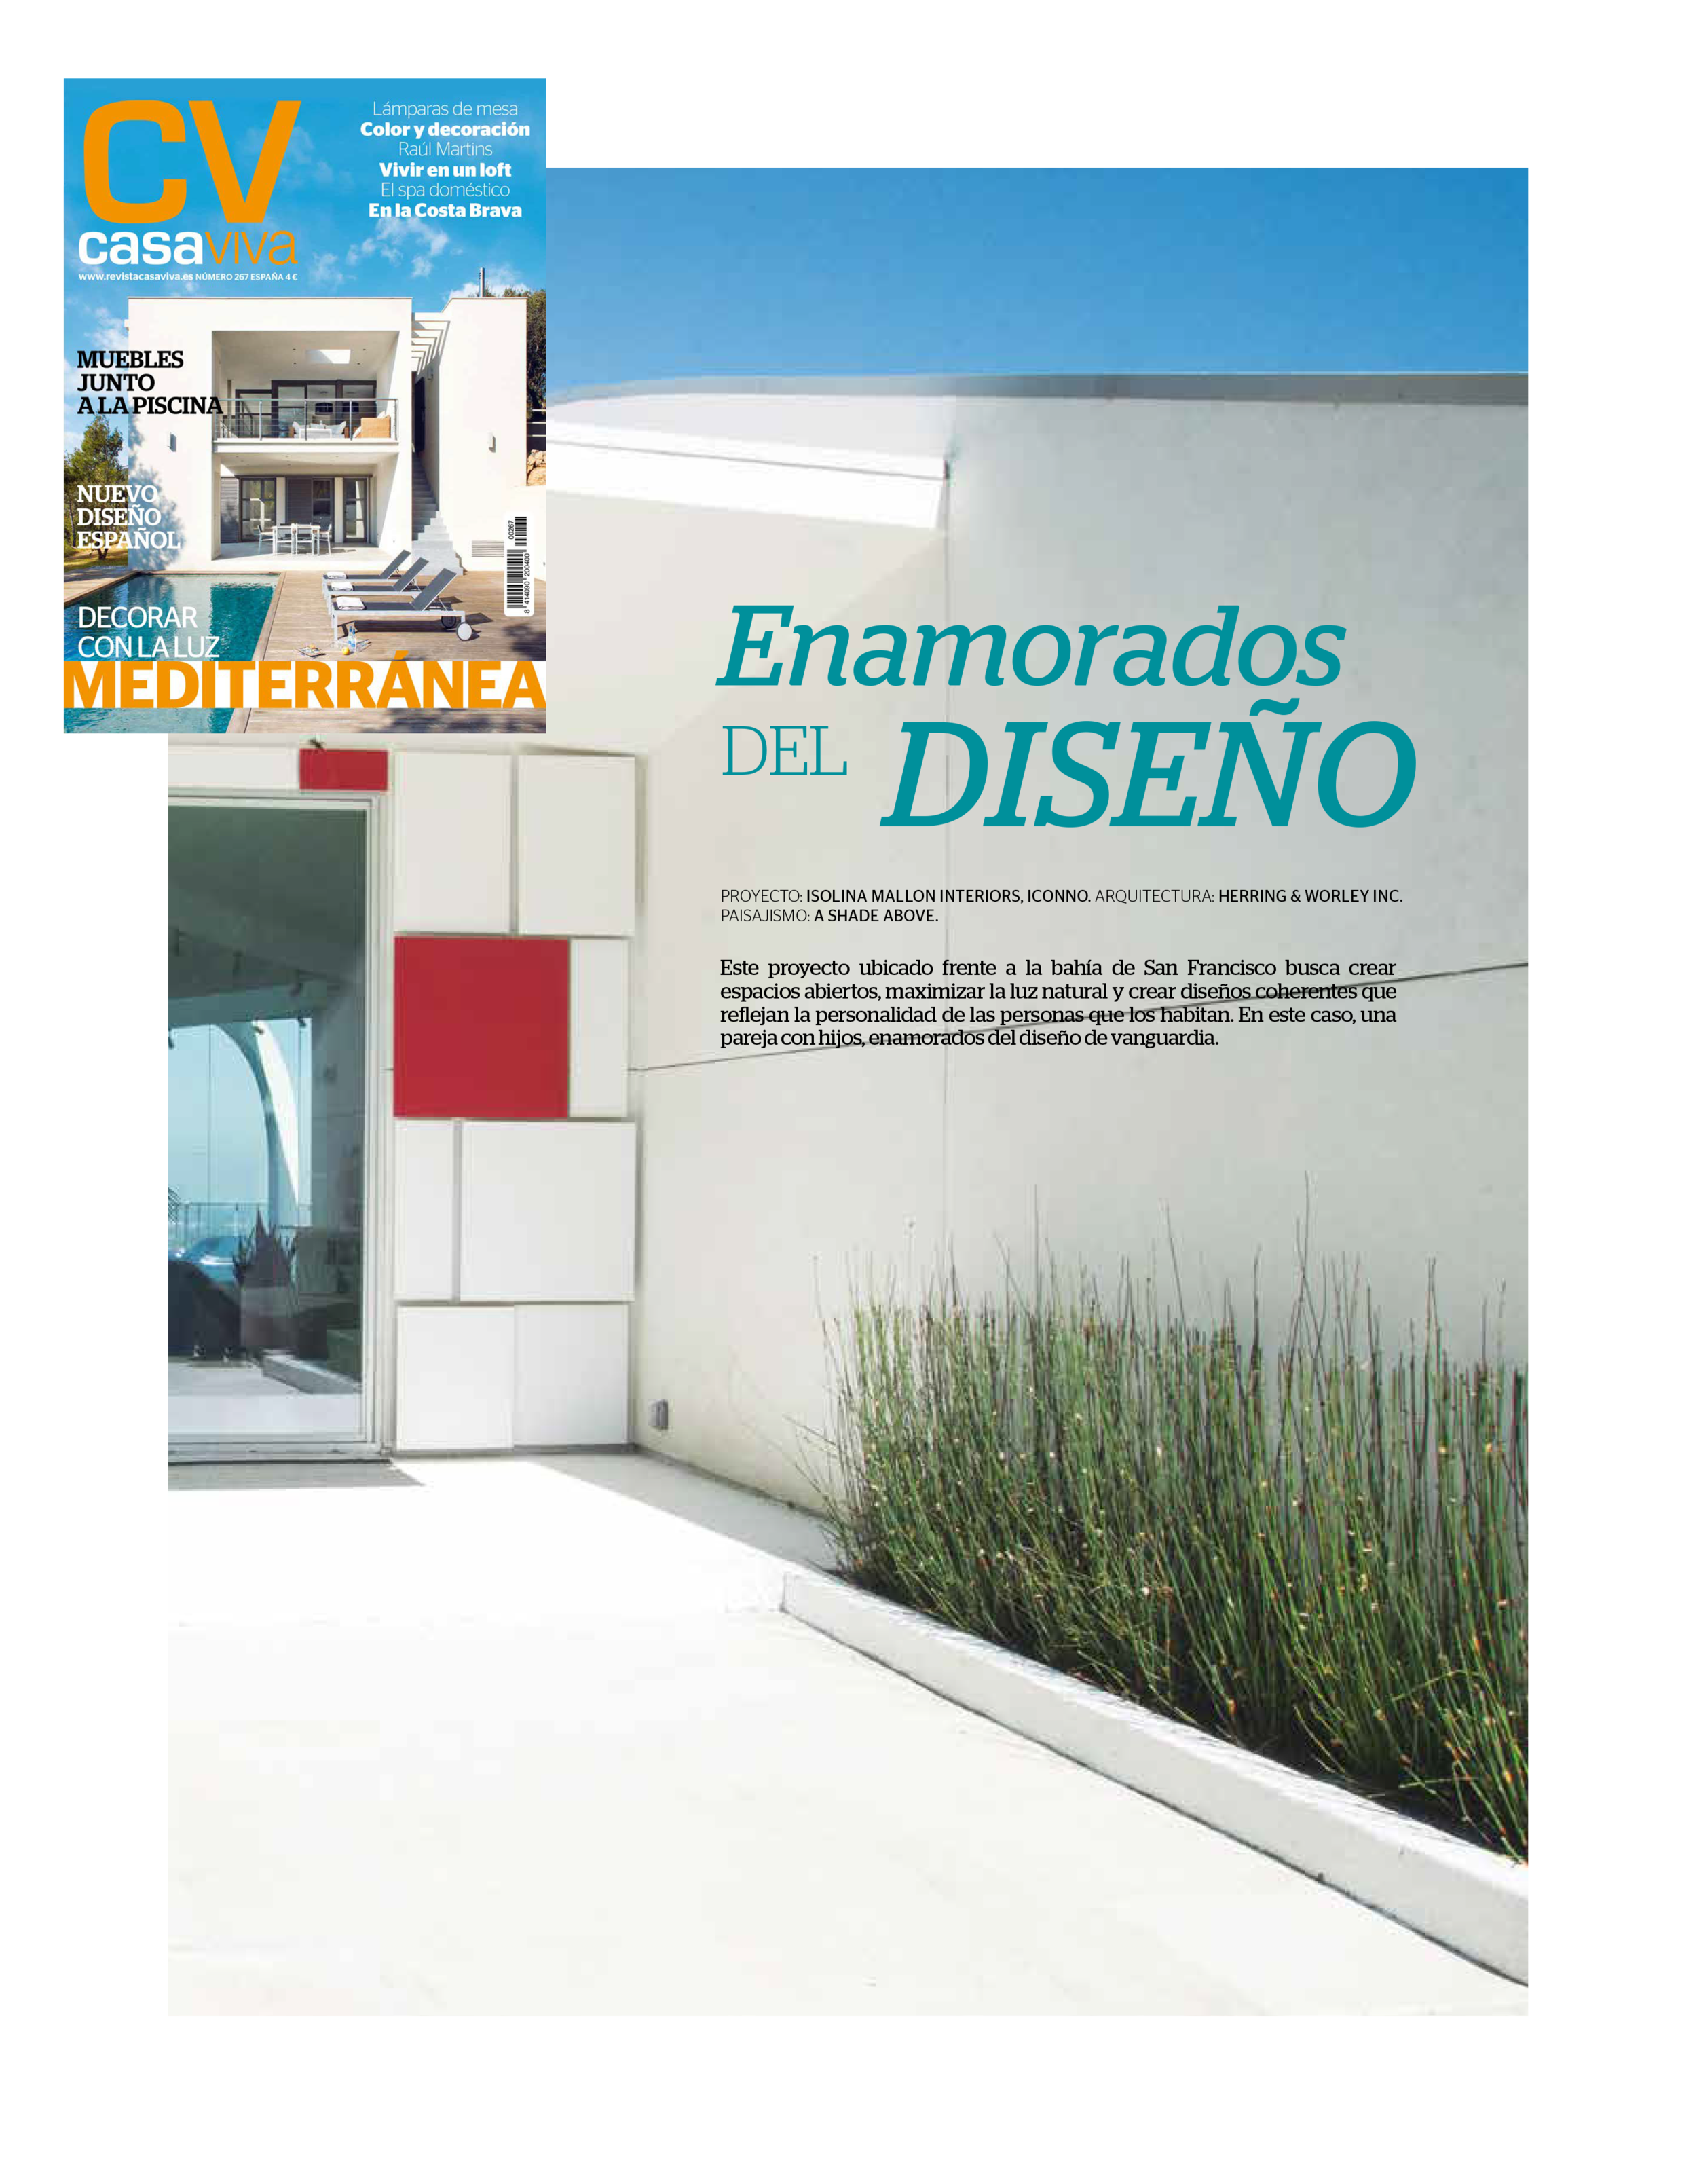 casa viva magazine. house tour. IN LOVE WITH DESIGN. august 2019.   Casa viva Spain published a house tour of our Curved House in Los Altos Hills project in his August number. Twenty-five pages featuring this beautiful work.   read more.